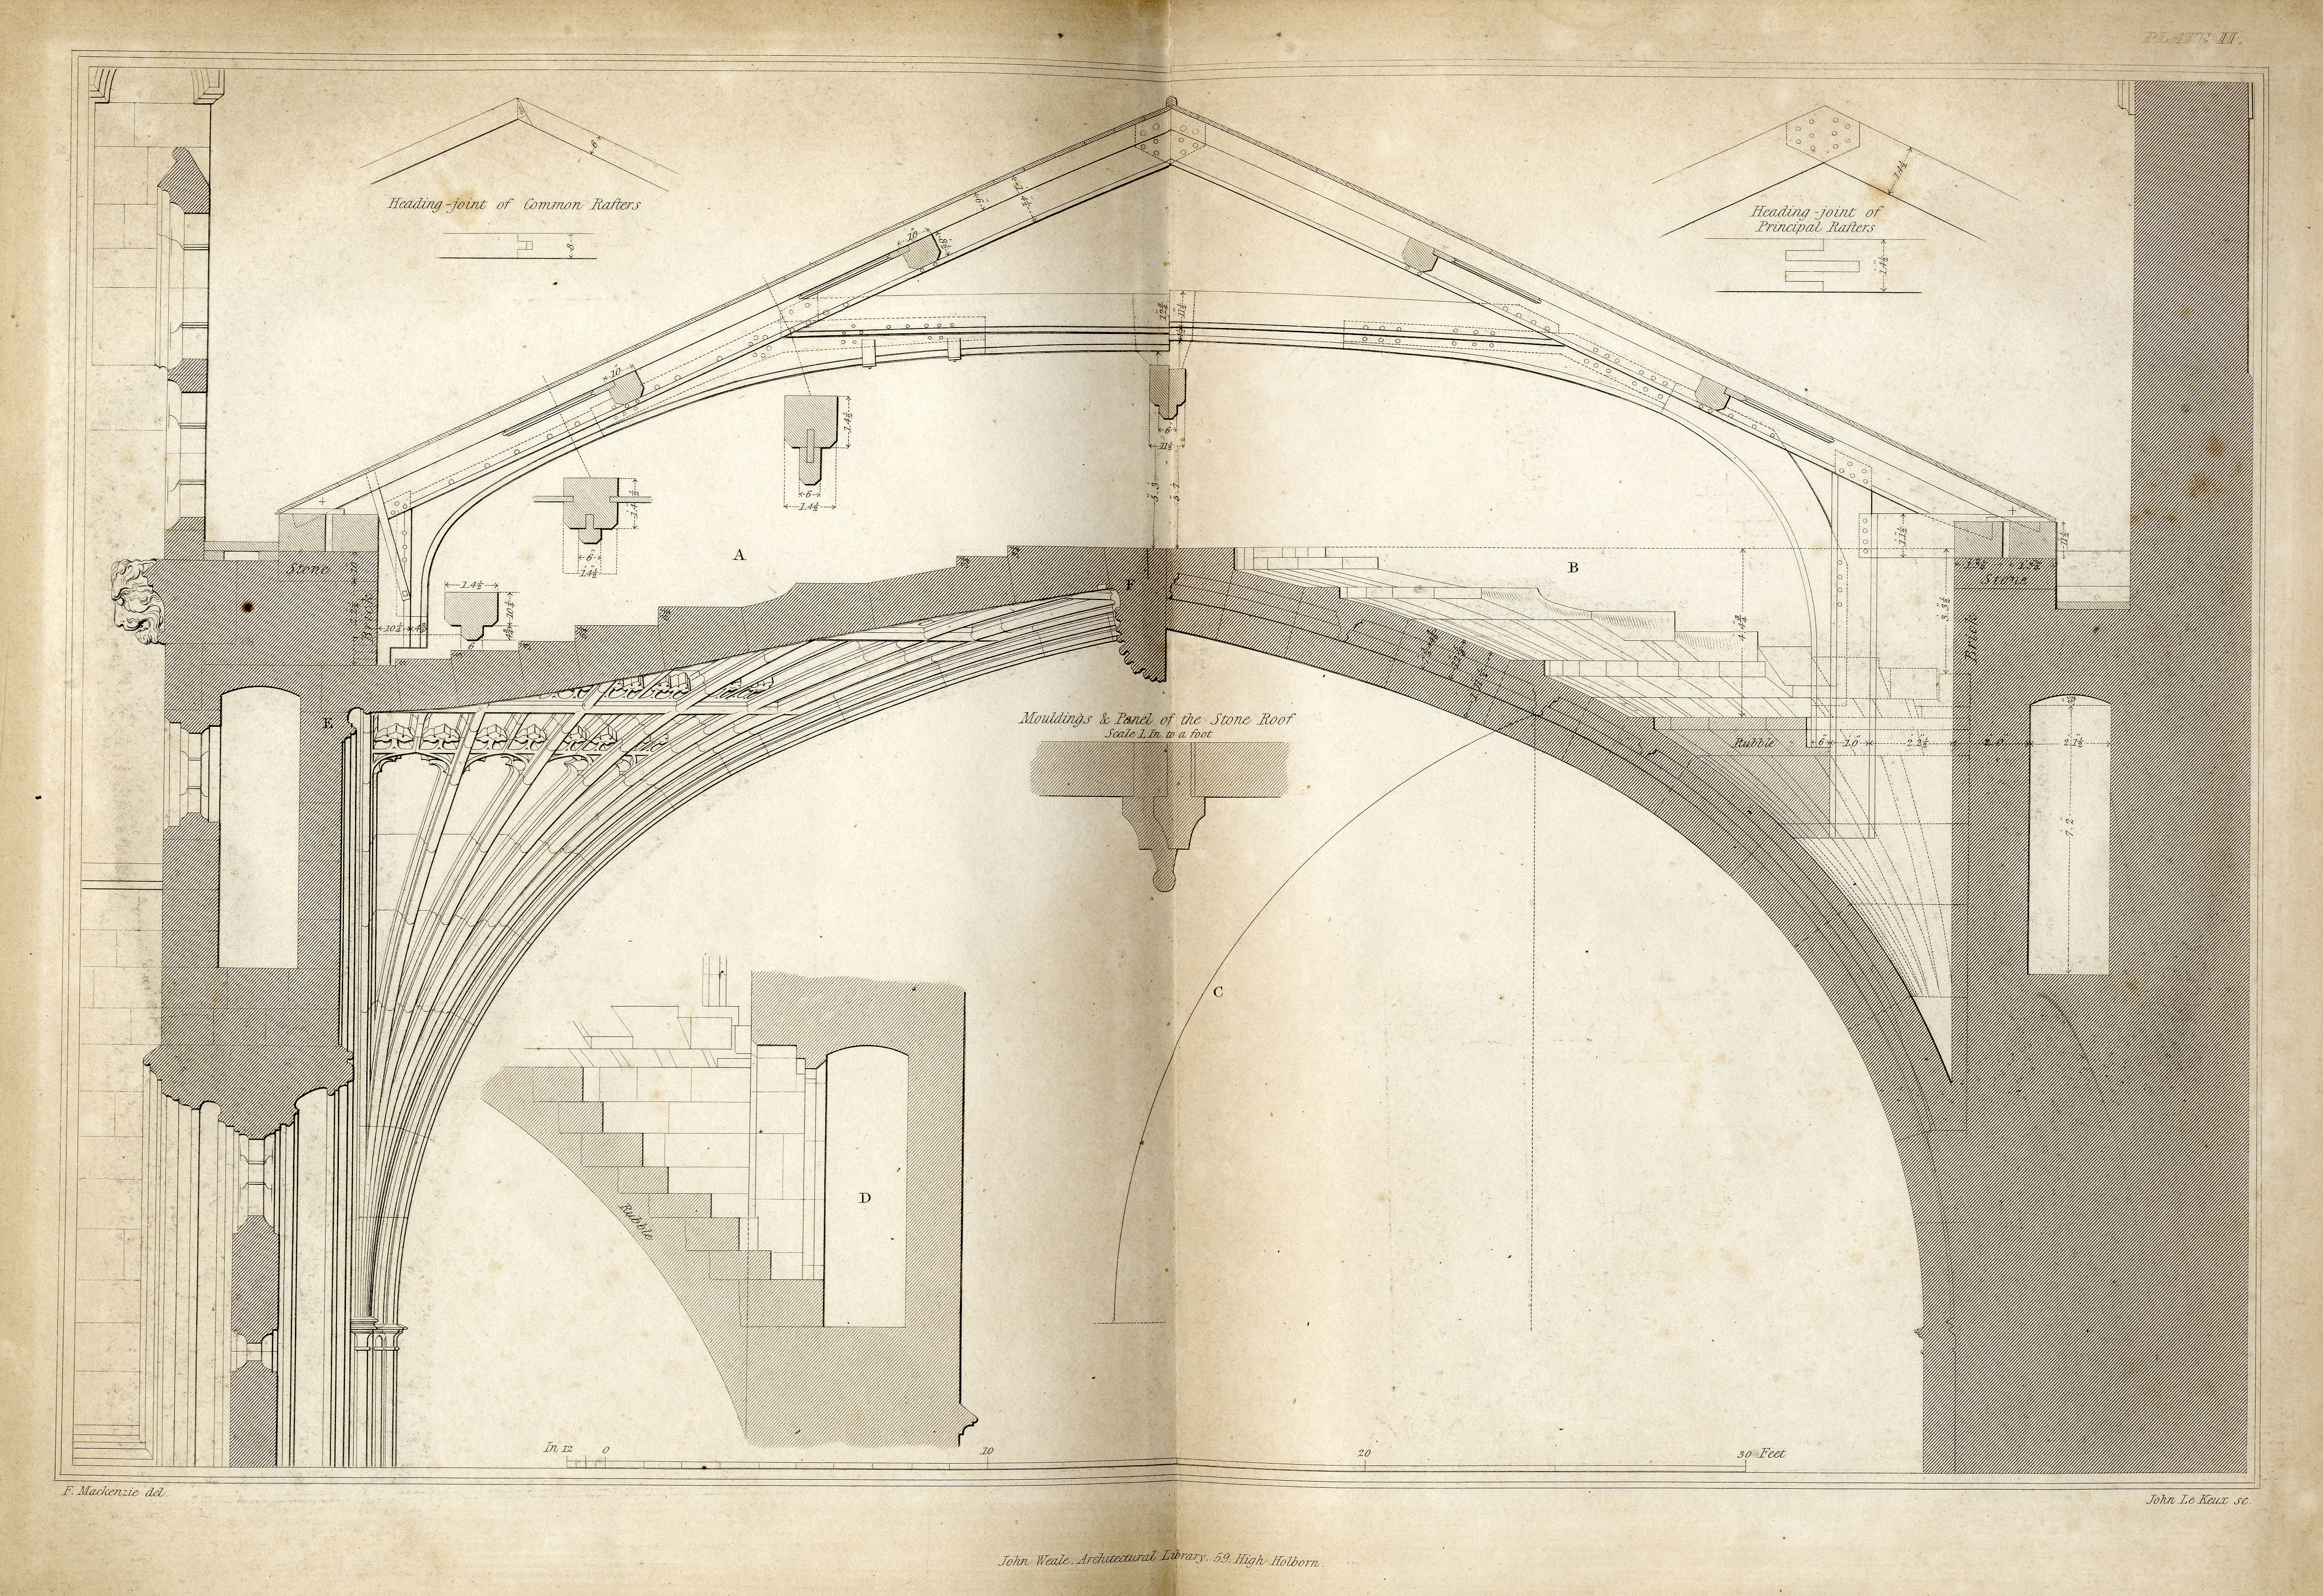 Diagram showing a section of the vault, roof and passages. [MacKenzie plate 2]